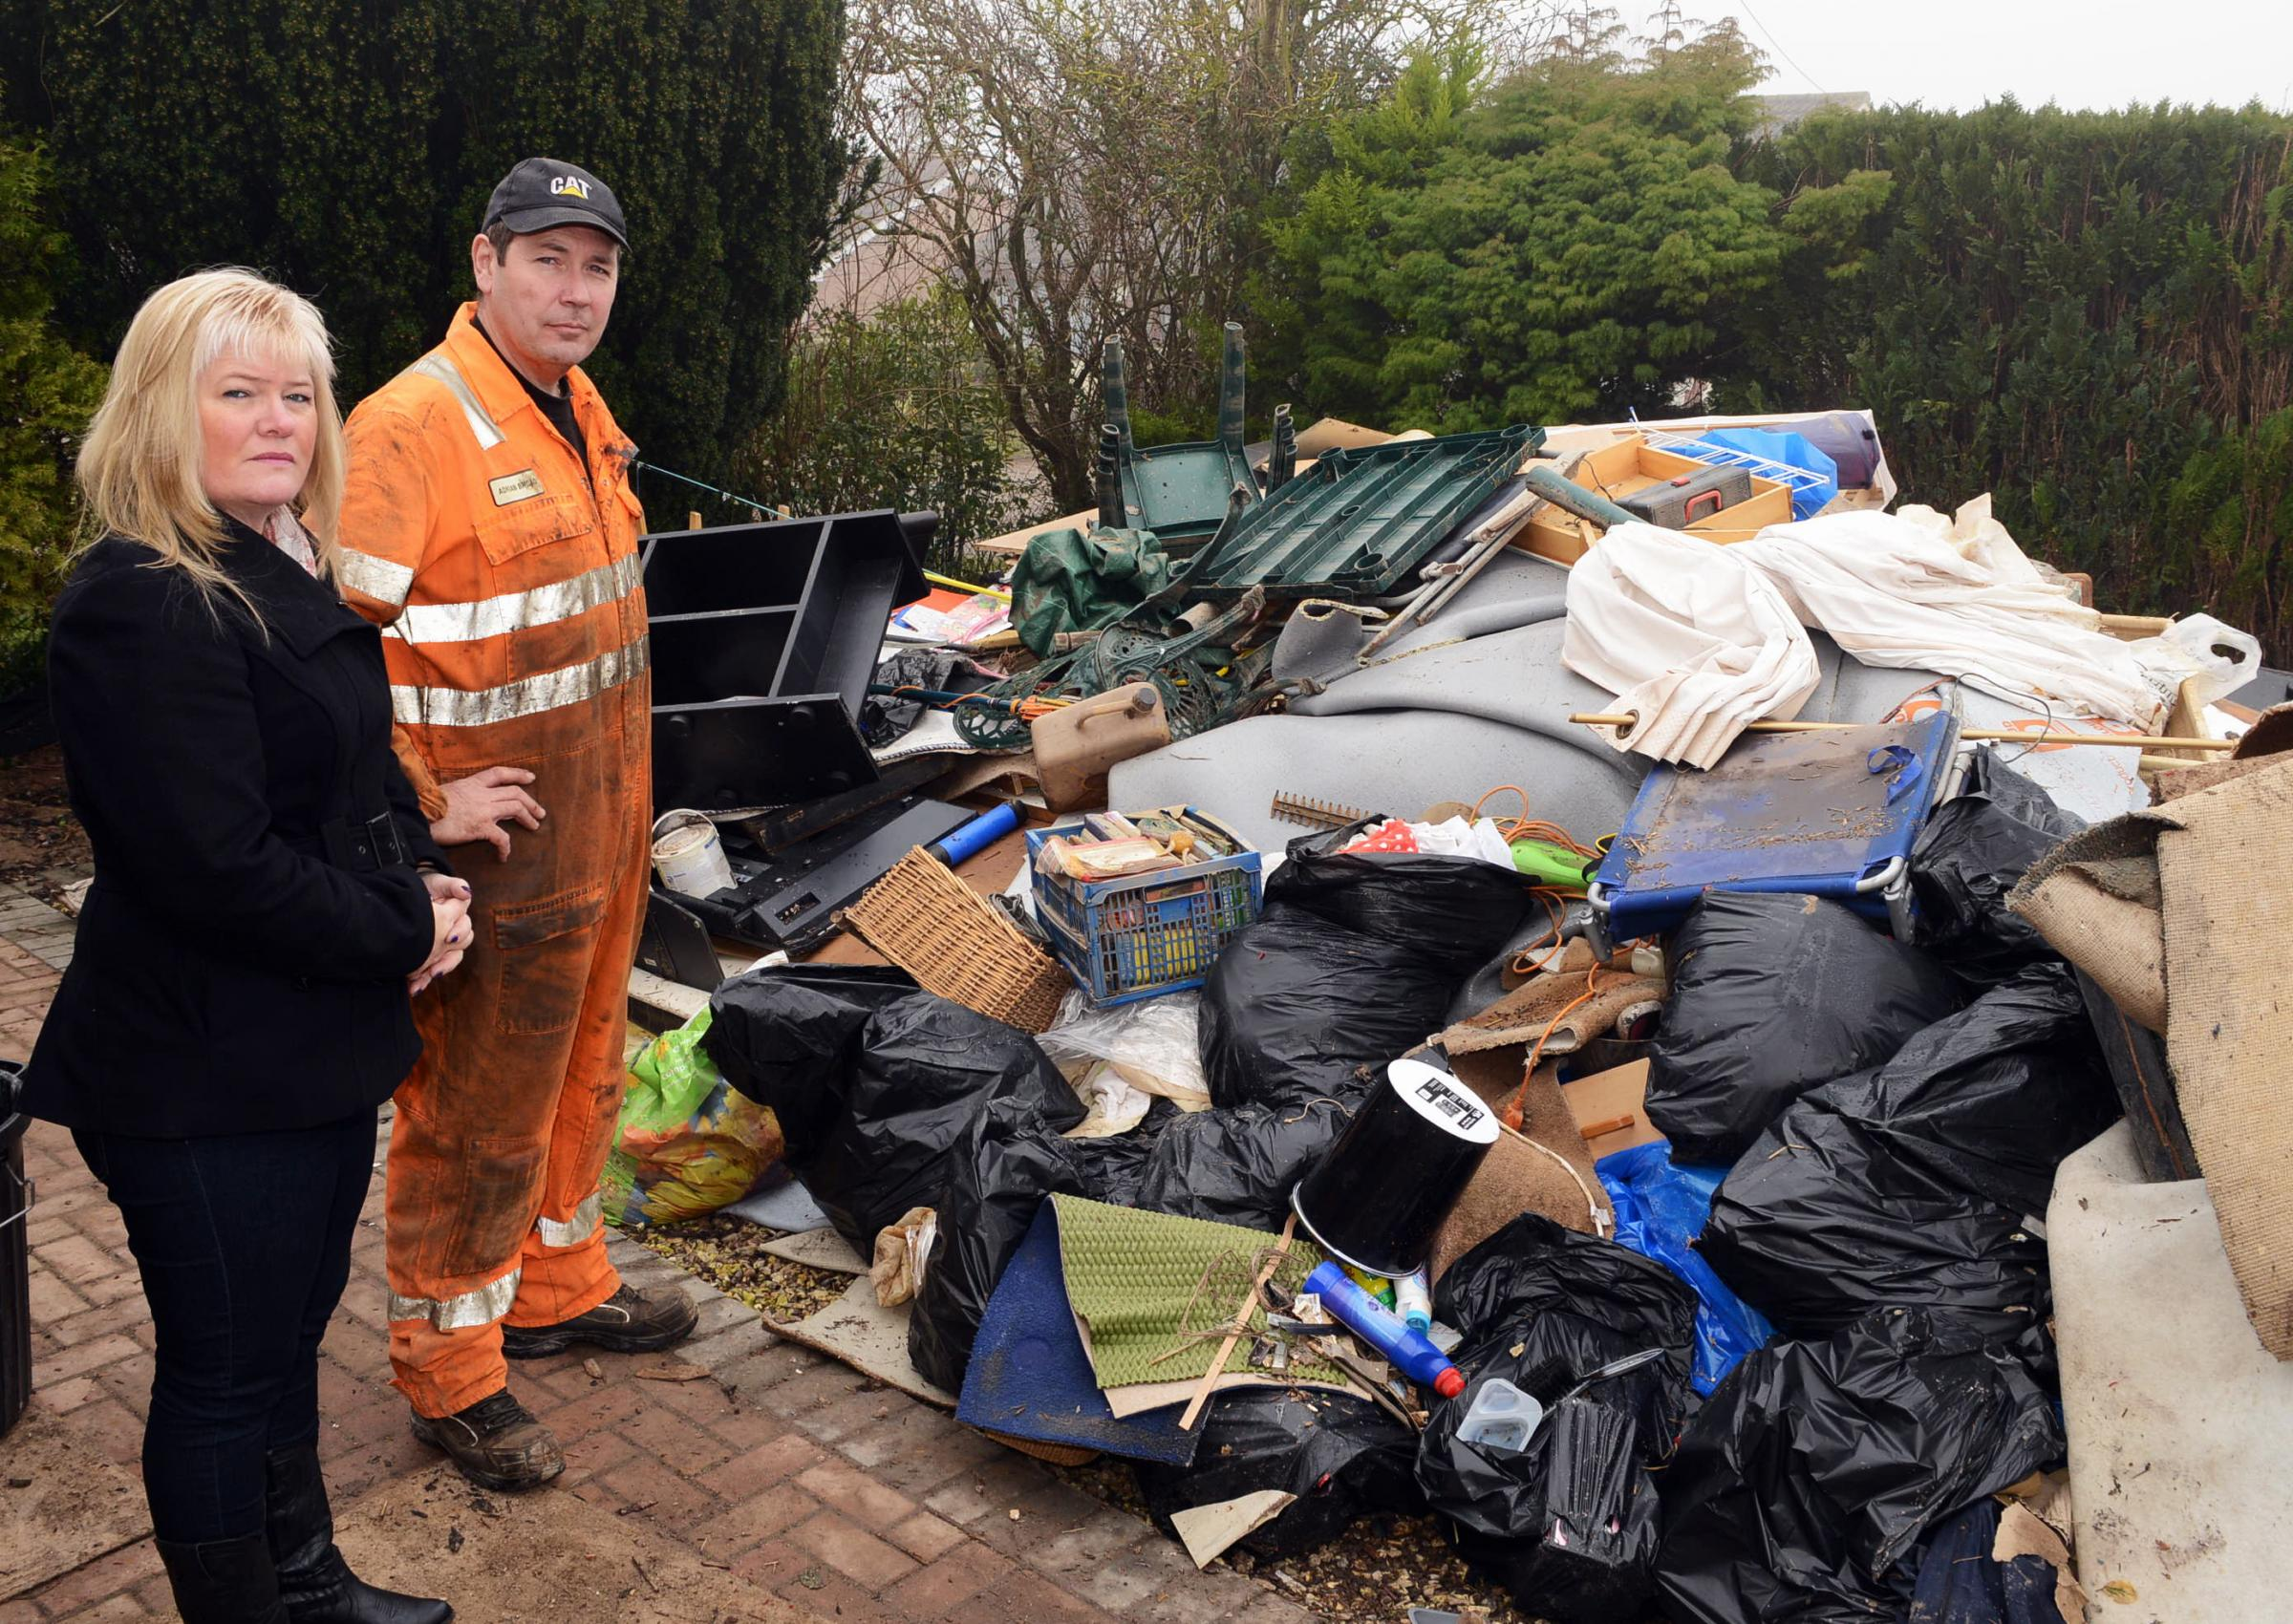 FEATURE: Moorland clean-up continues as residents reveal true damage of floods